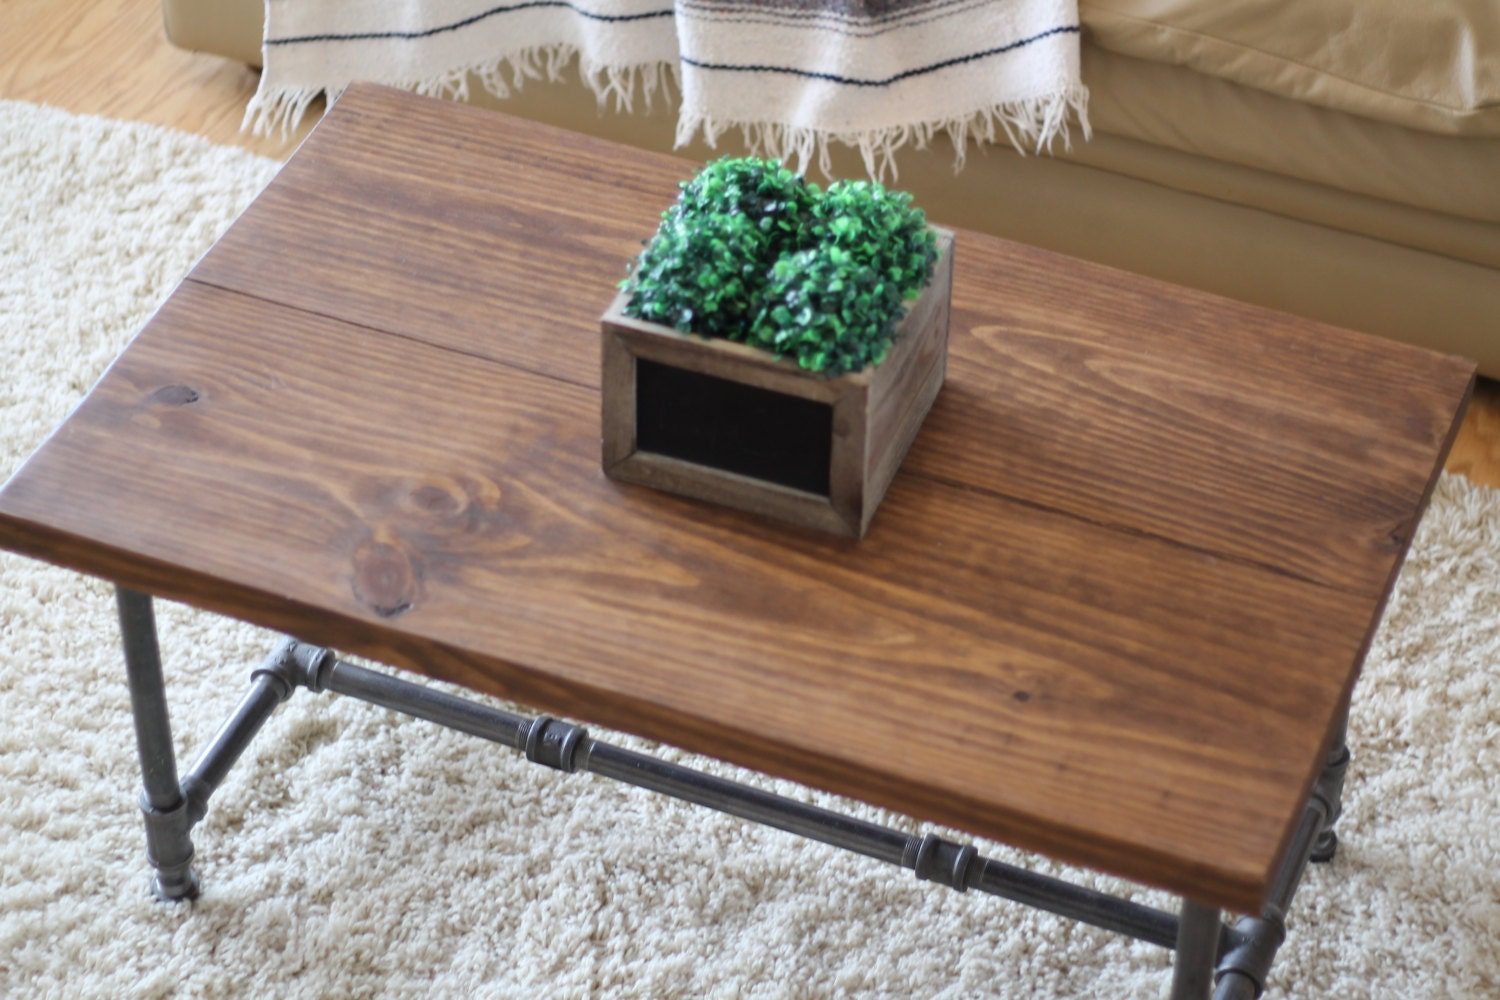 Rustic Industrial Coffee Table Rustic Home Decor Rustic Furniture Industrial Furniture